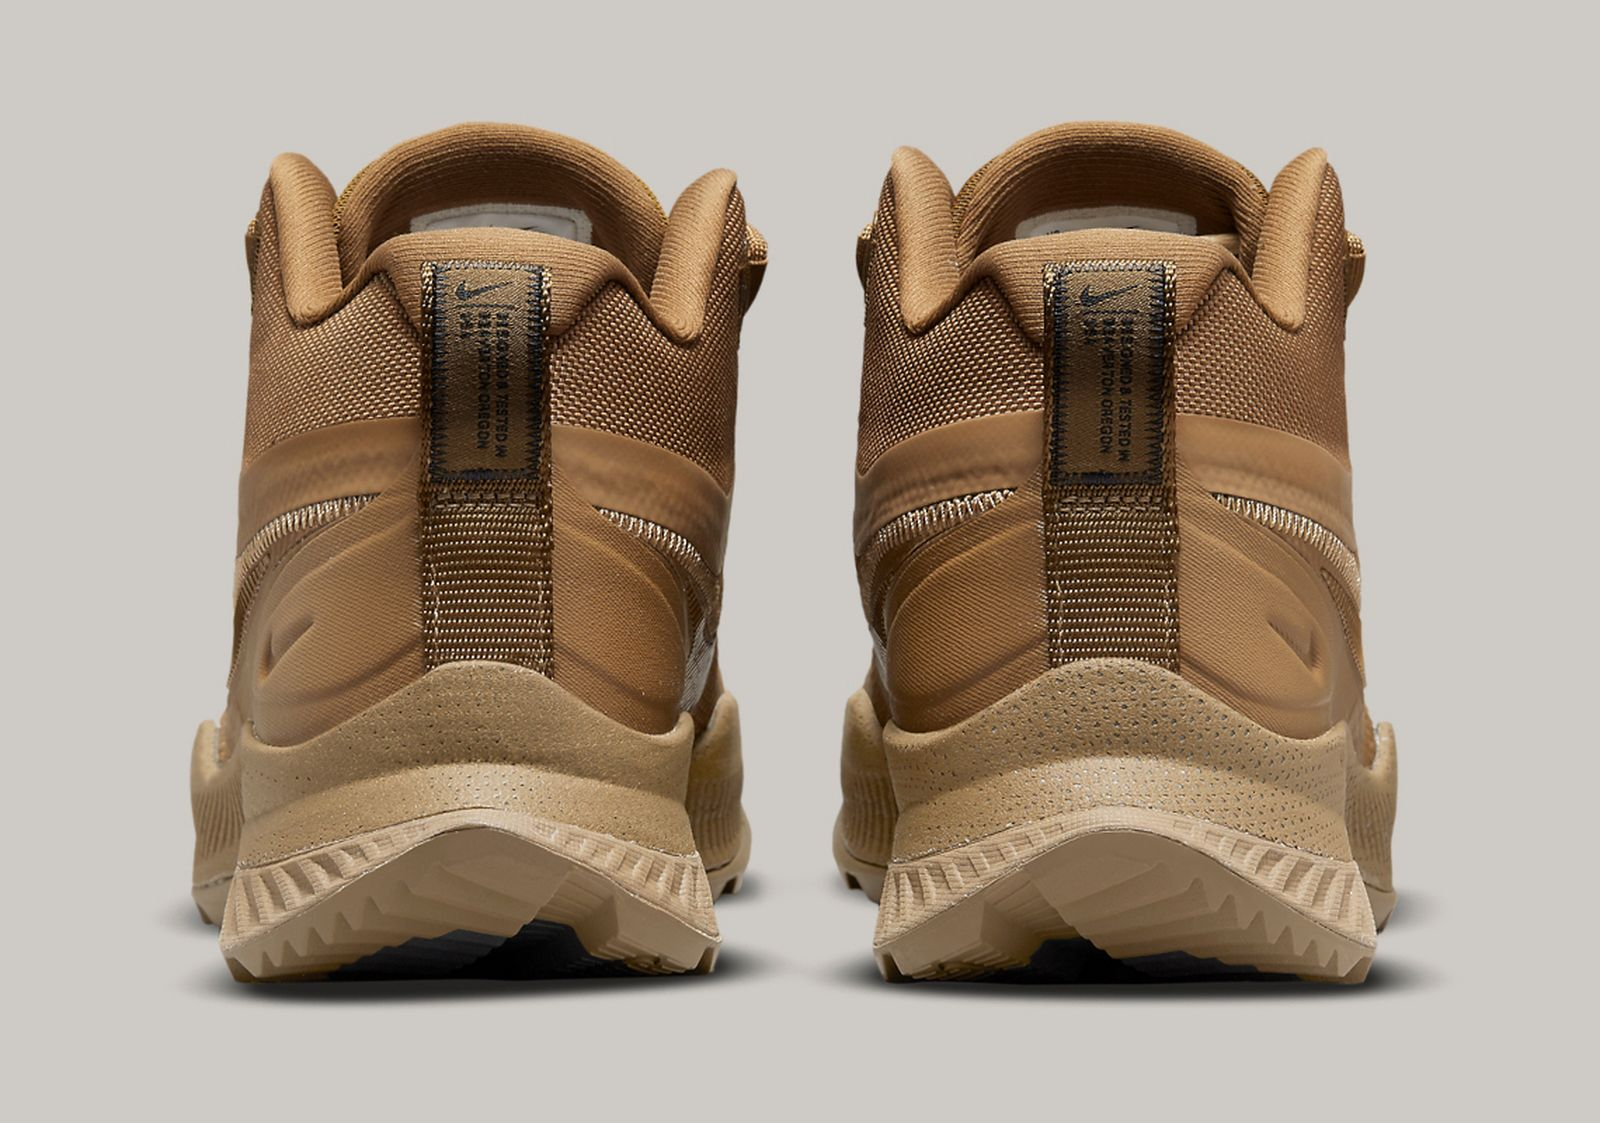 nike-sfb-carbon-mid-react-release-date-price-11